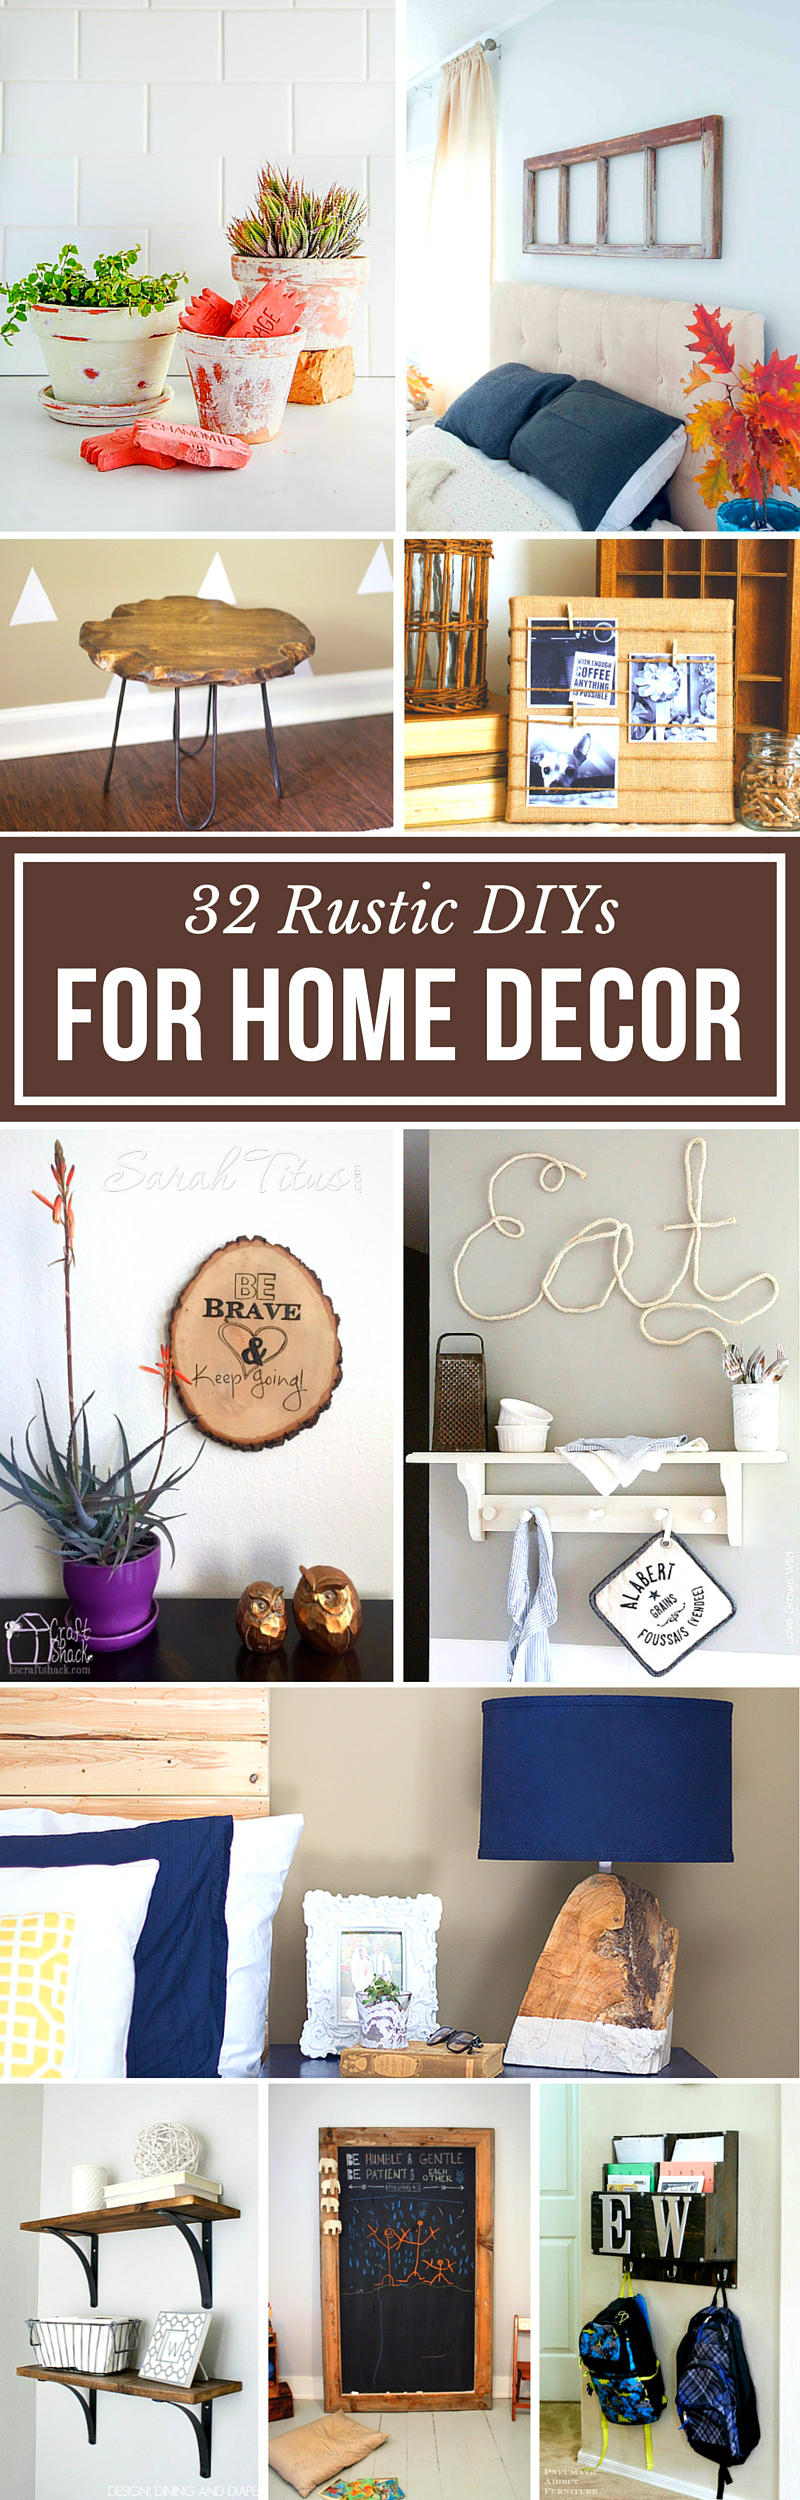 There are so many cute designs in the rustic home decor category, but these will give your home a touch of elegance! Here are 32 rustic DIYs for home decor.